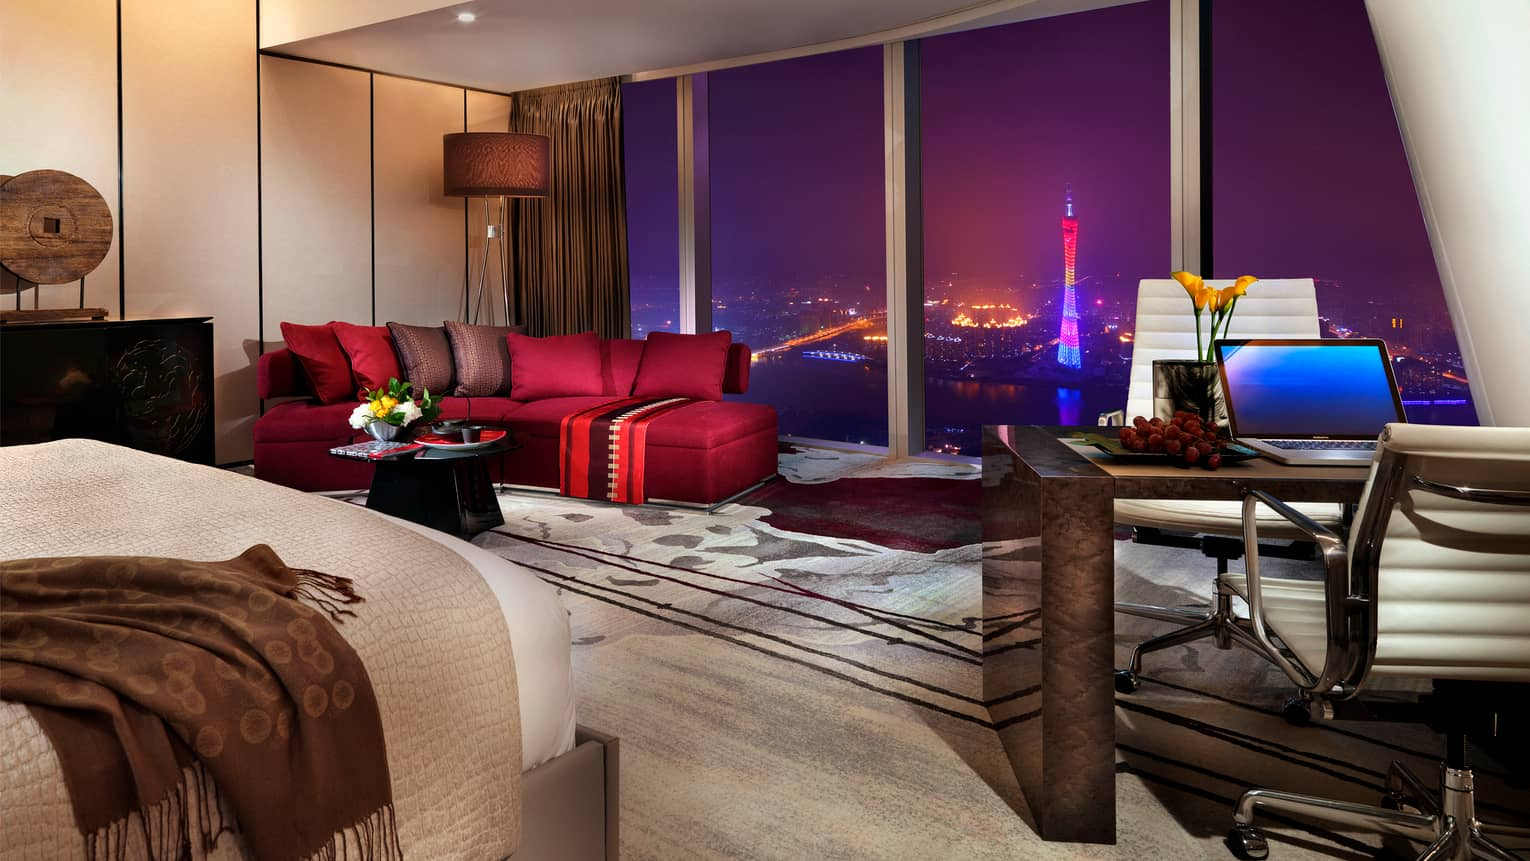 Floor-to-ceiling hotel room window at night with city view, beside stylish red sofa and area rug